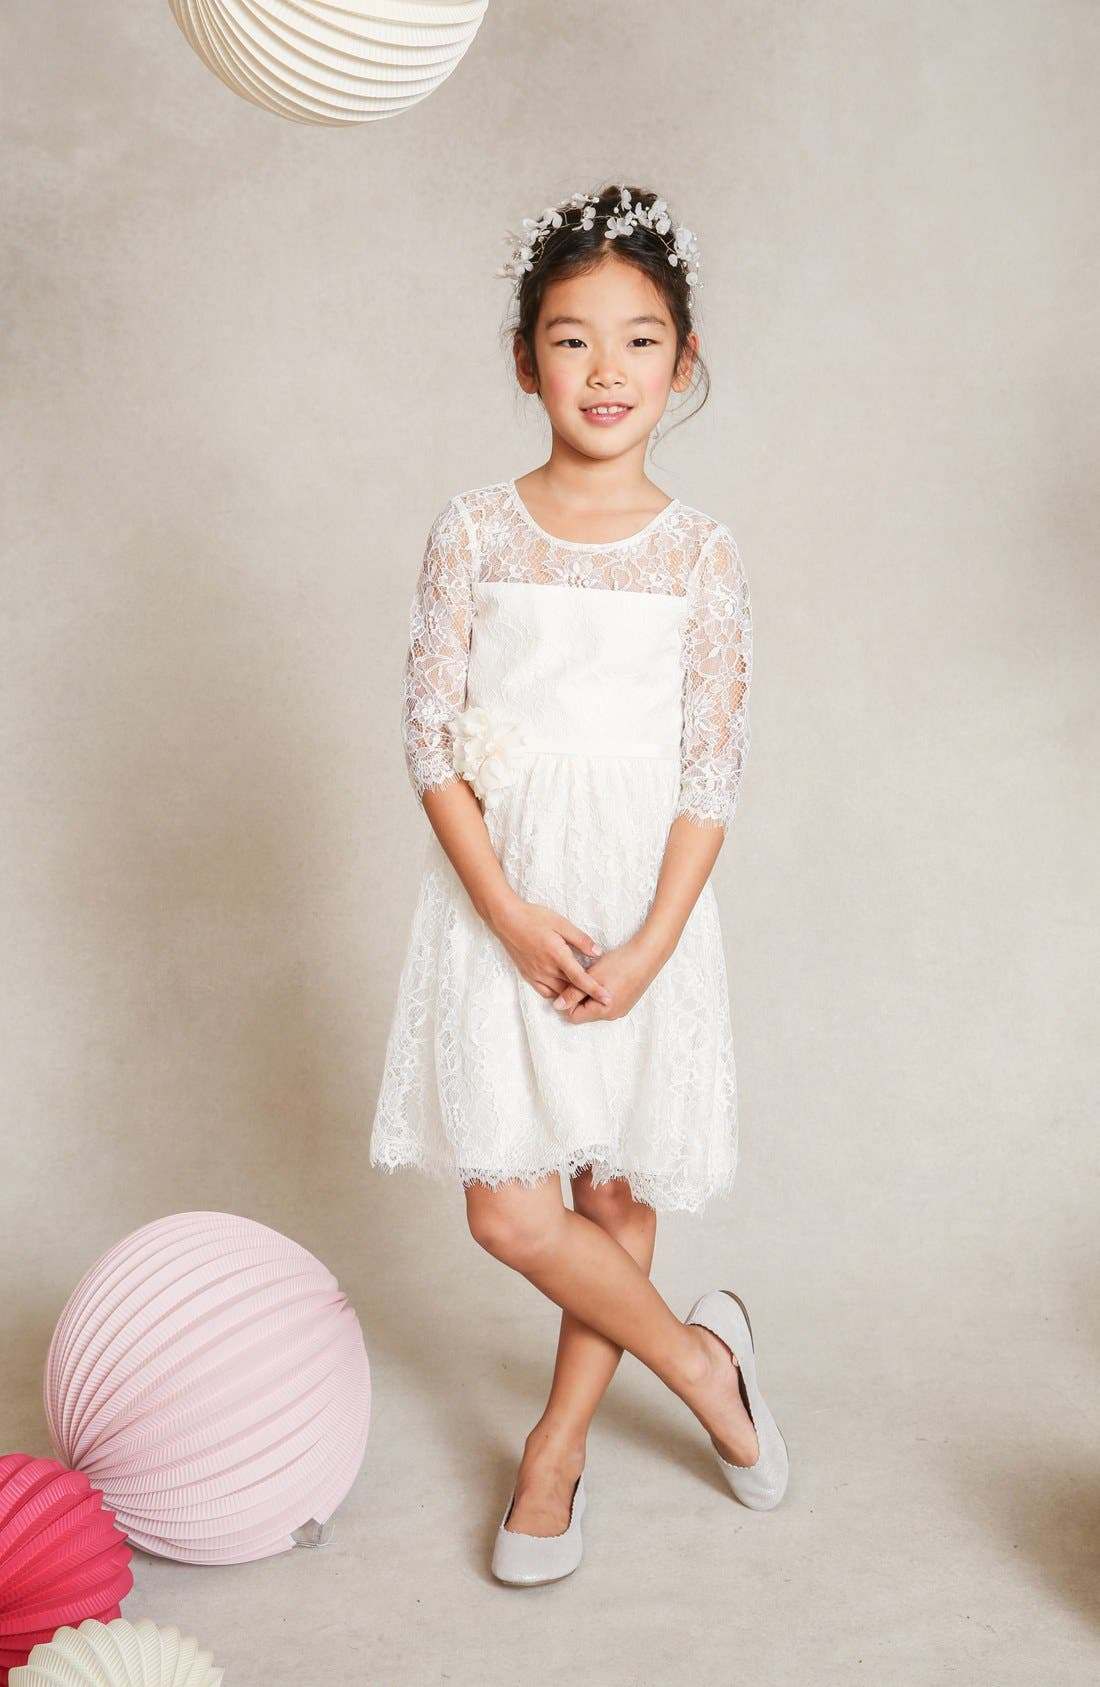 Main Image - Jenny Yoo 'Annie' Floral Appliqué Lace Dress (Toddler, Little Girls & Big Girls)